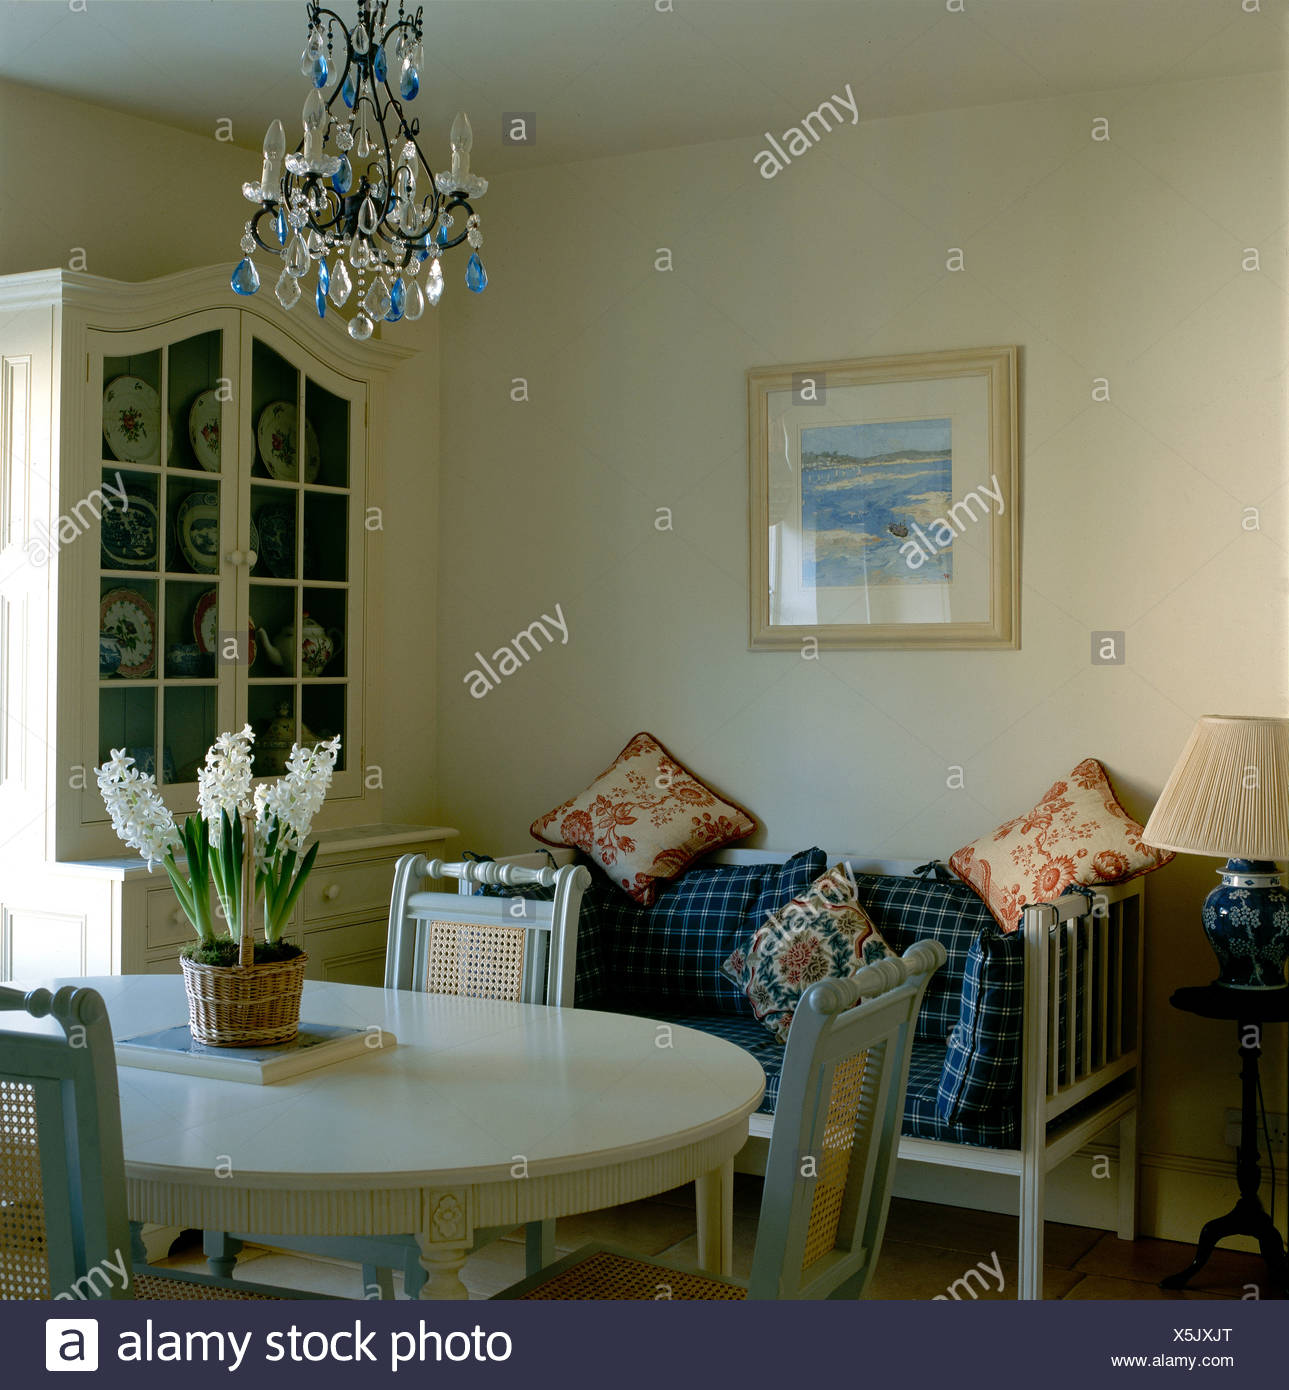 Terrific Glass Chandelier Above Gray Chairs And Oval Table With Pot Dailytribune Chair Design For Home Dailytribuneorg